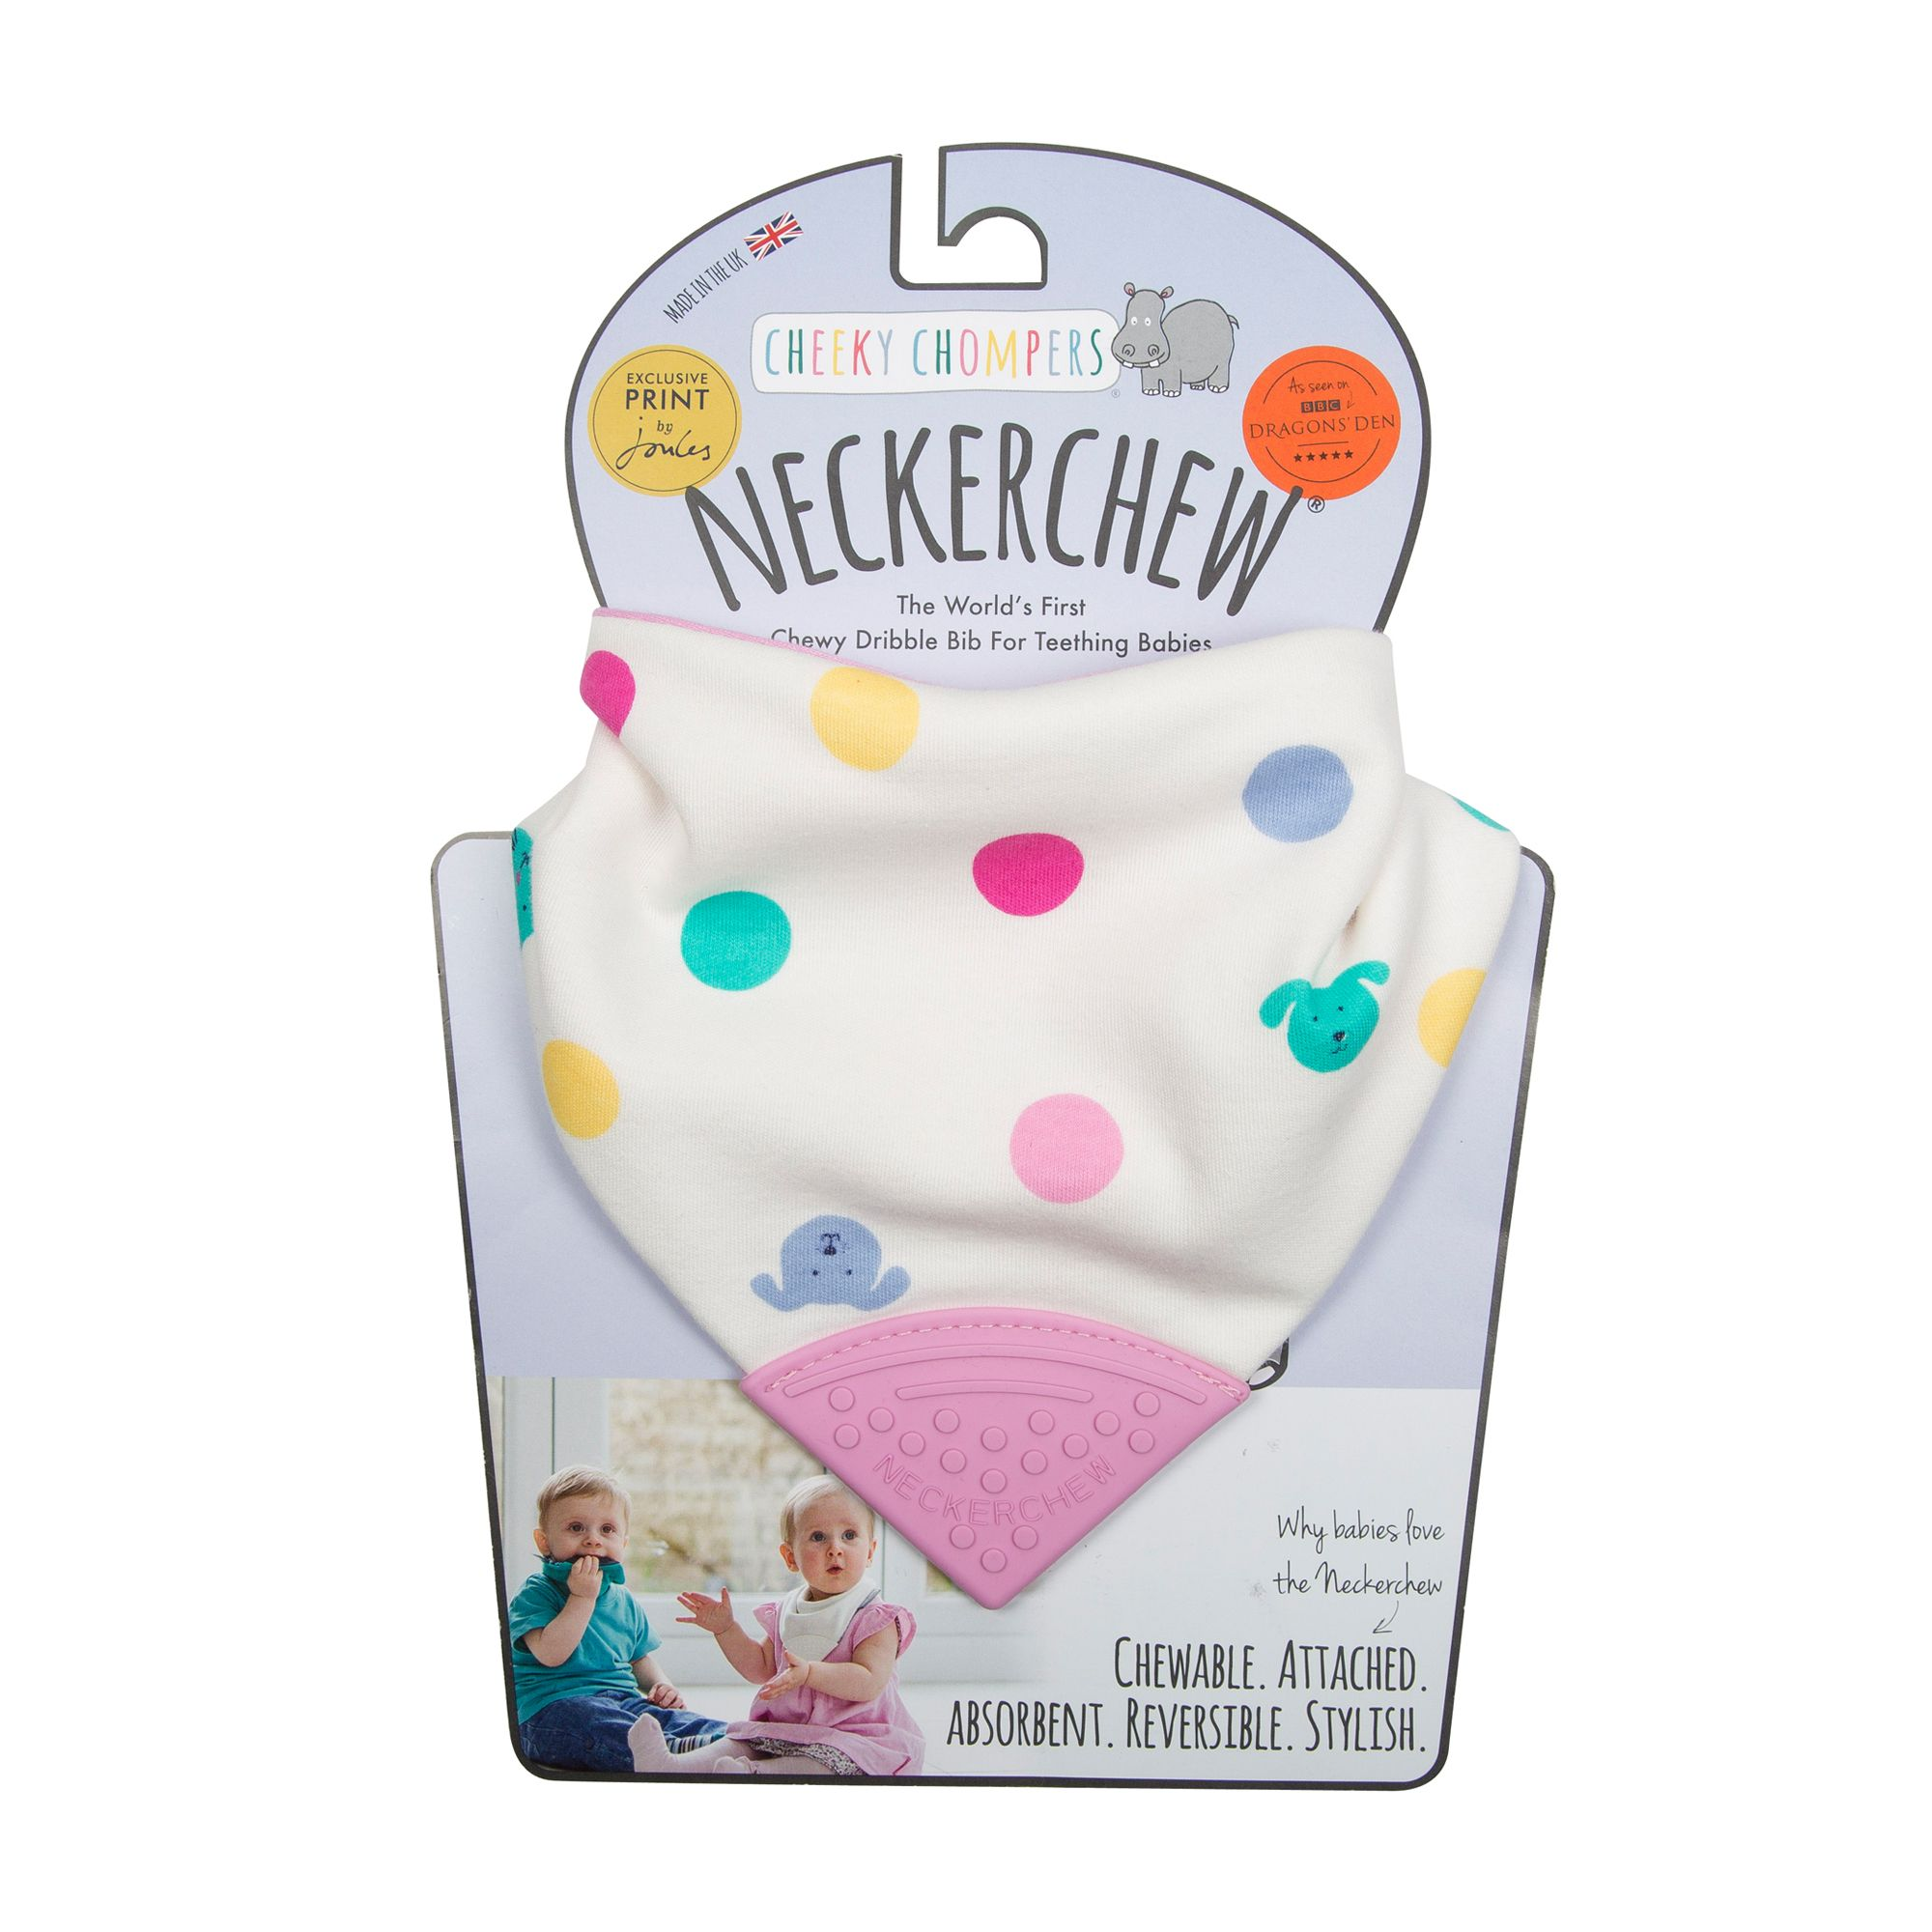 Neckerchew - Cat Dog Spot - Baby Toy by Cheeky Chompers